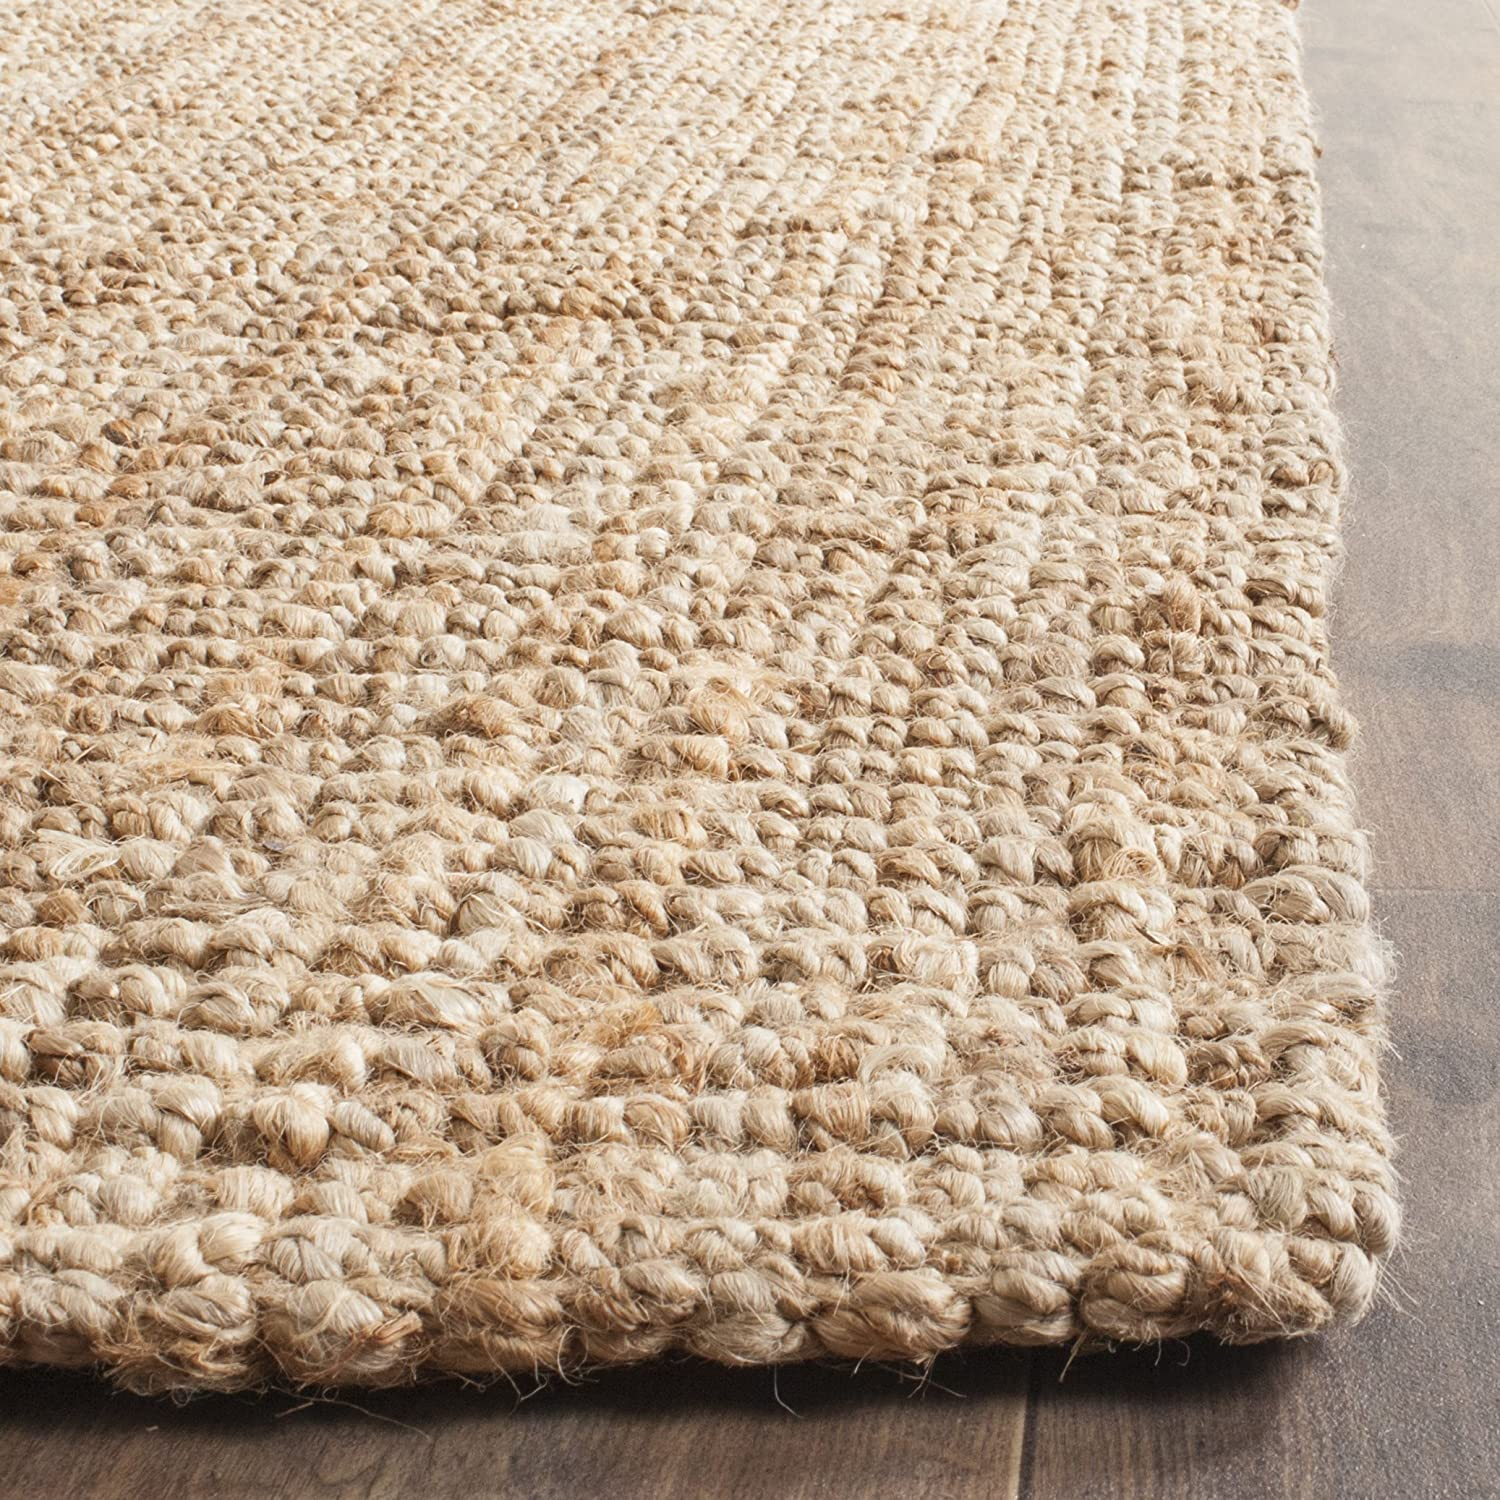 Amazon.com: Safavieh Natural Fiber Collection NF447A Hand Woven Natural Jute  Area Rug (10' x 14'): Kitchen & Dining - Amazon.com: Safavieh Natural Fiber Collection NF447A Hand Woven